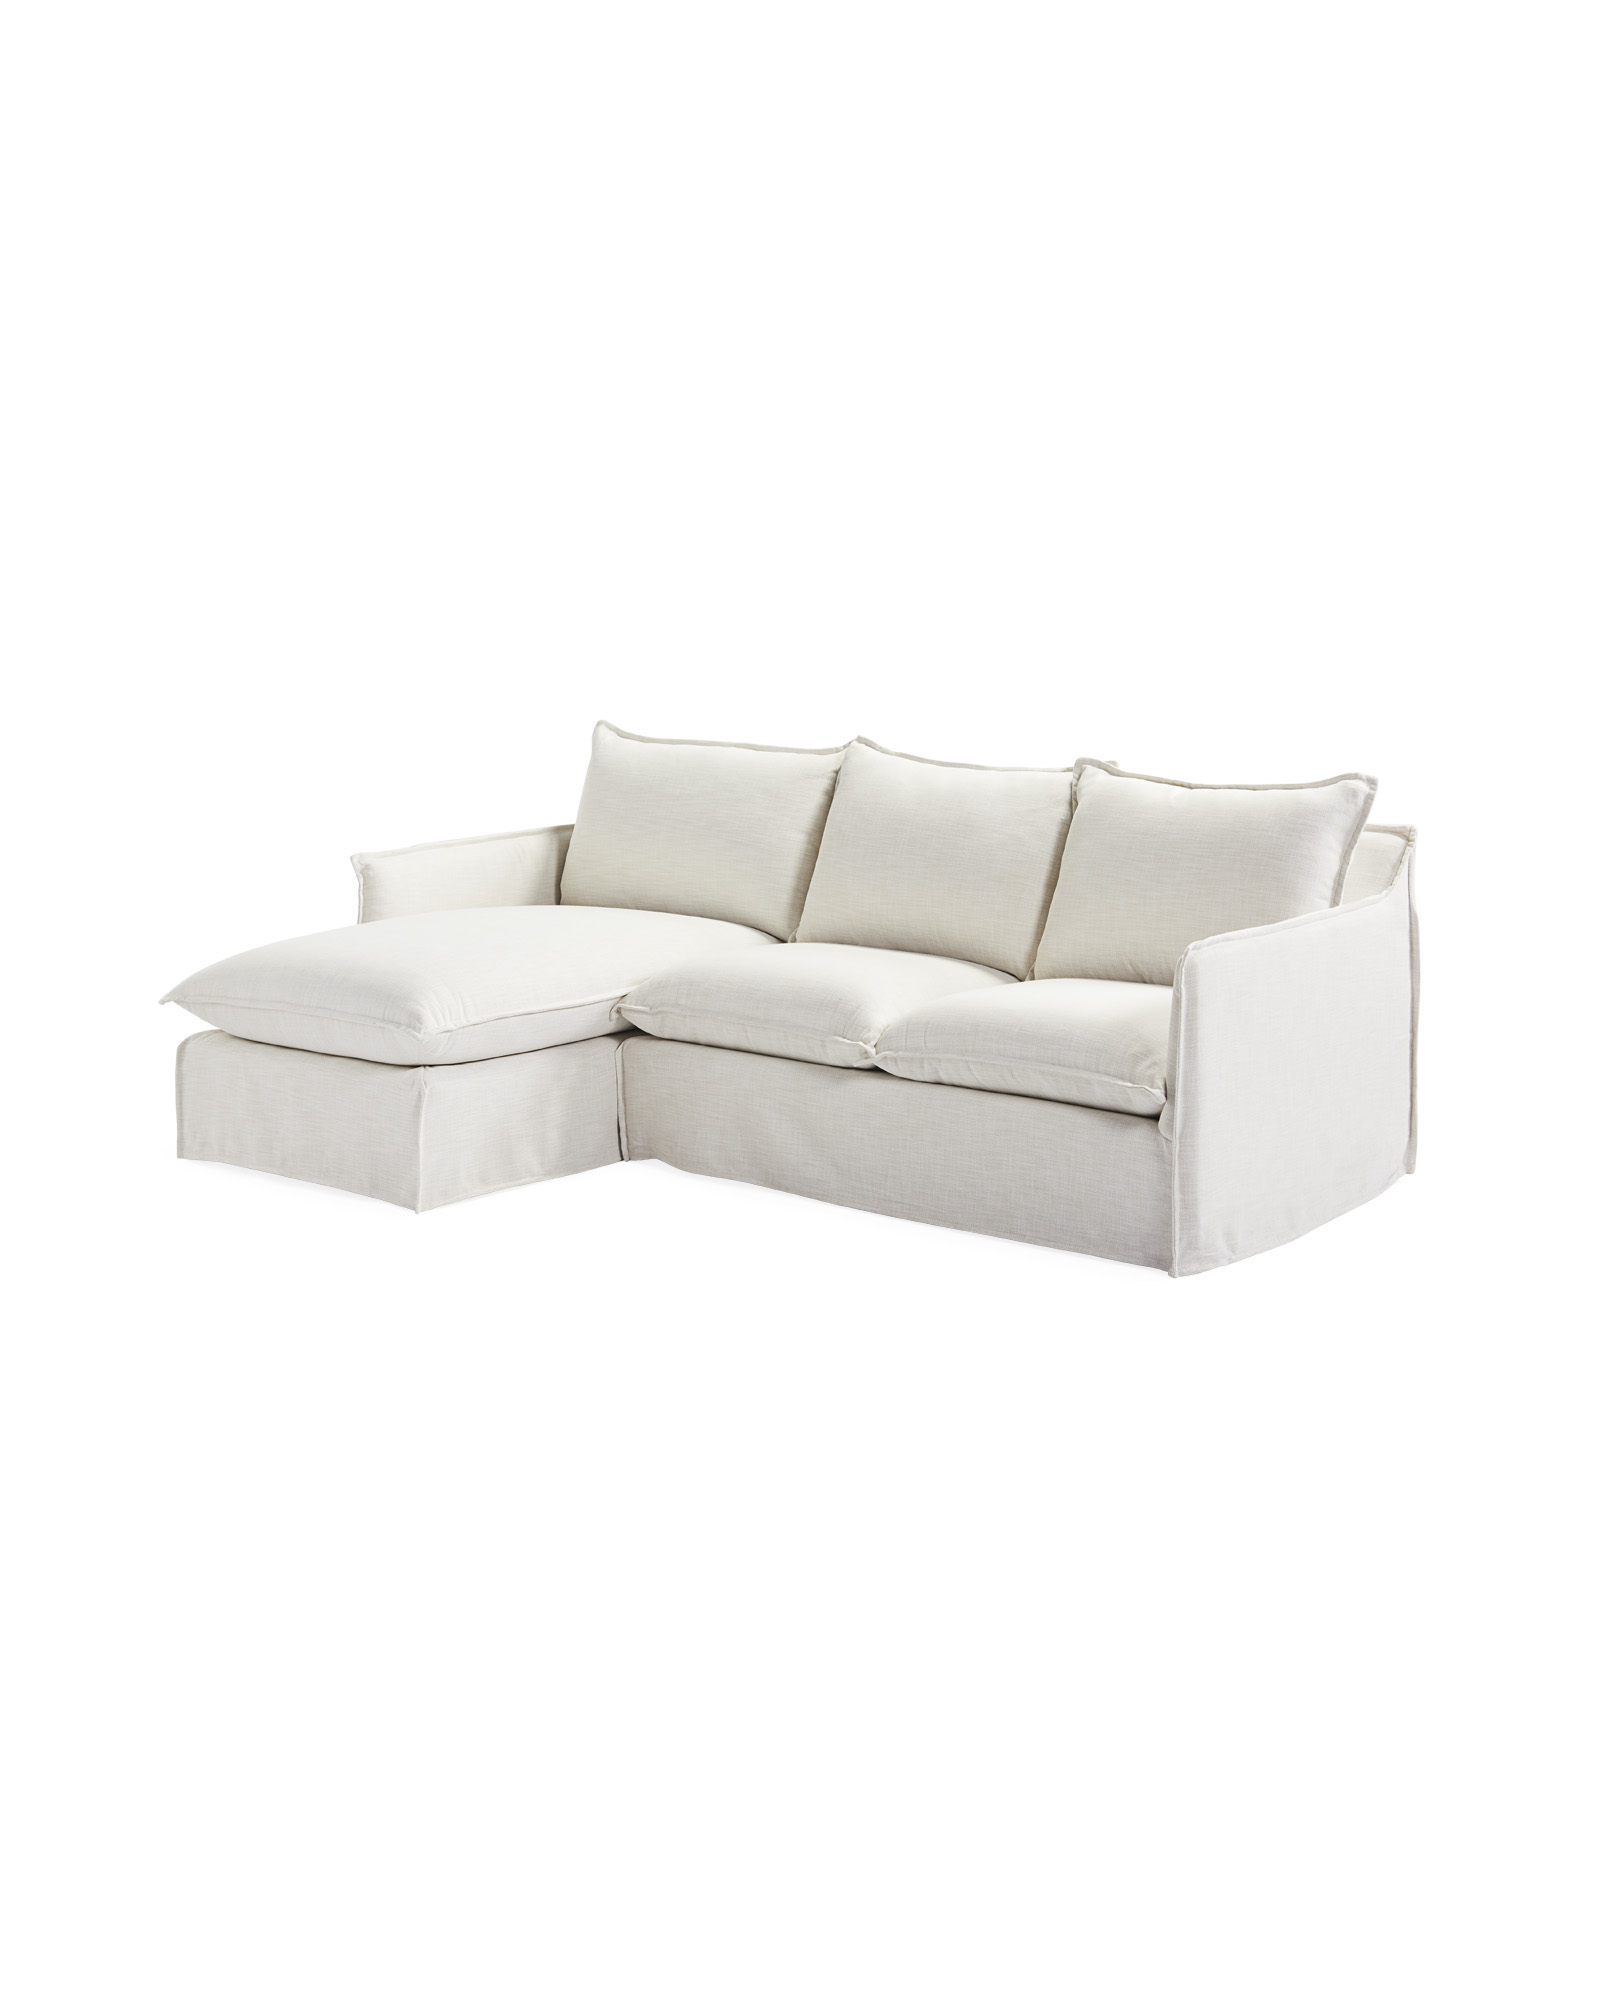 Sundial Outdoor Chaise Sectional - Left-Facing,